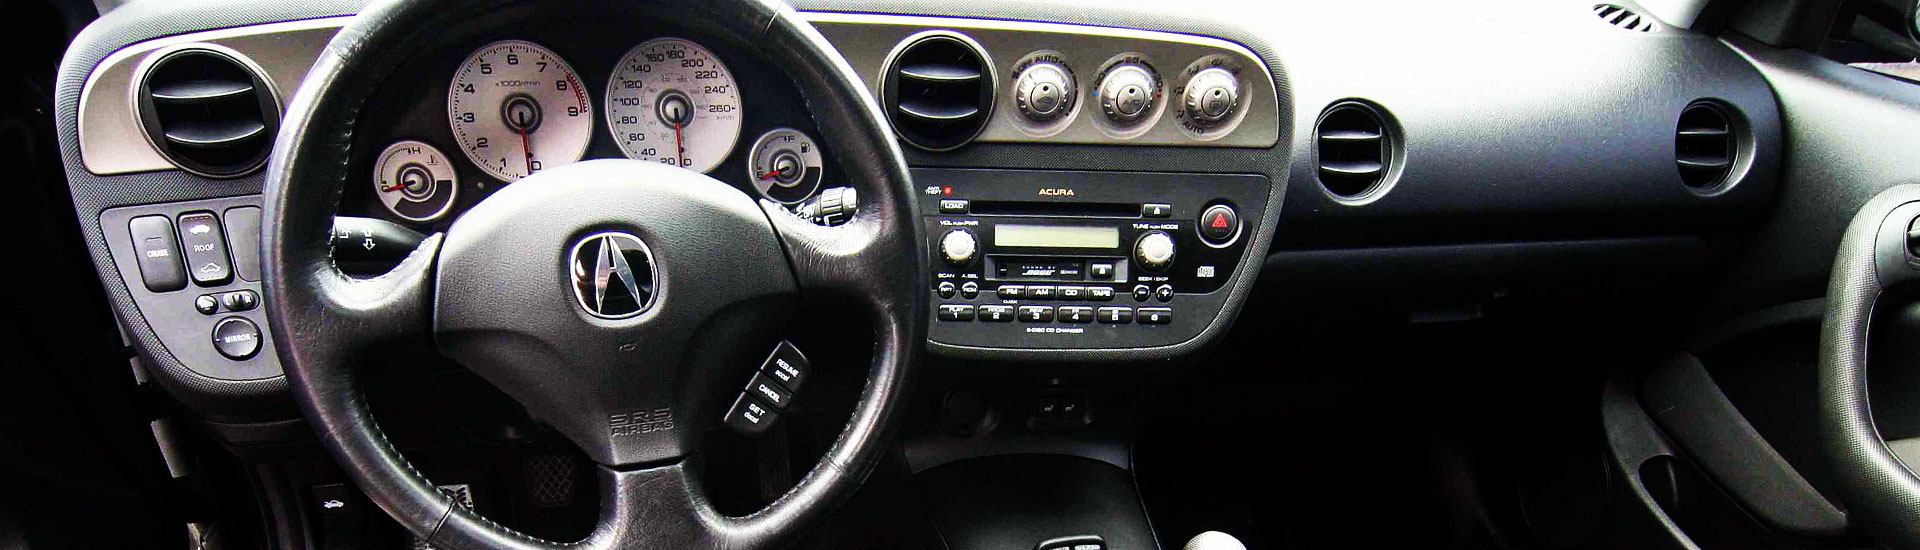 Acura RSX Custom Dash Kits